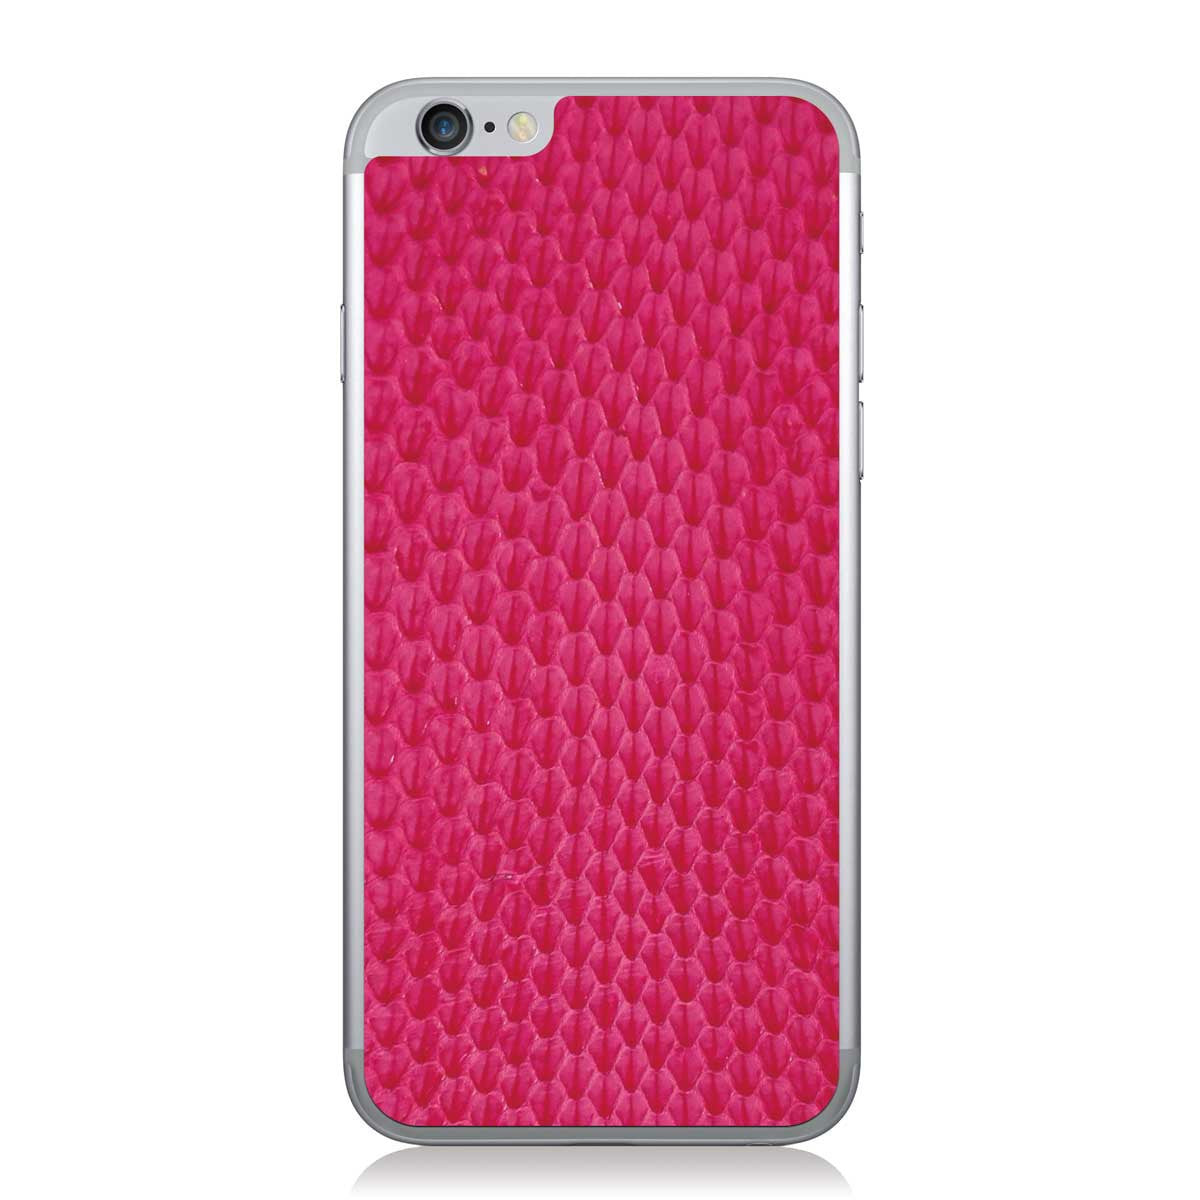 Pink Whip Snake iPhone 6/6s Leather Skin